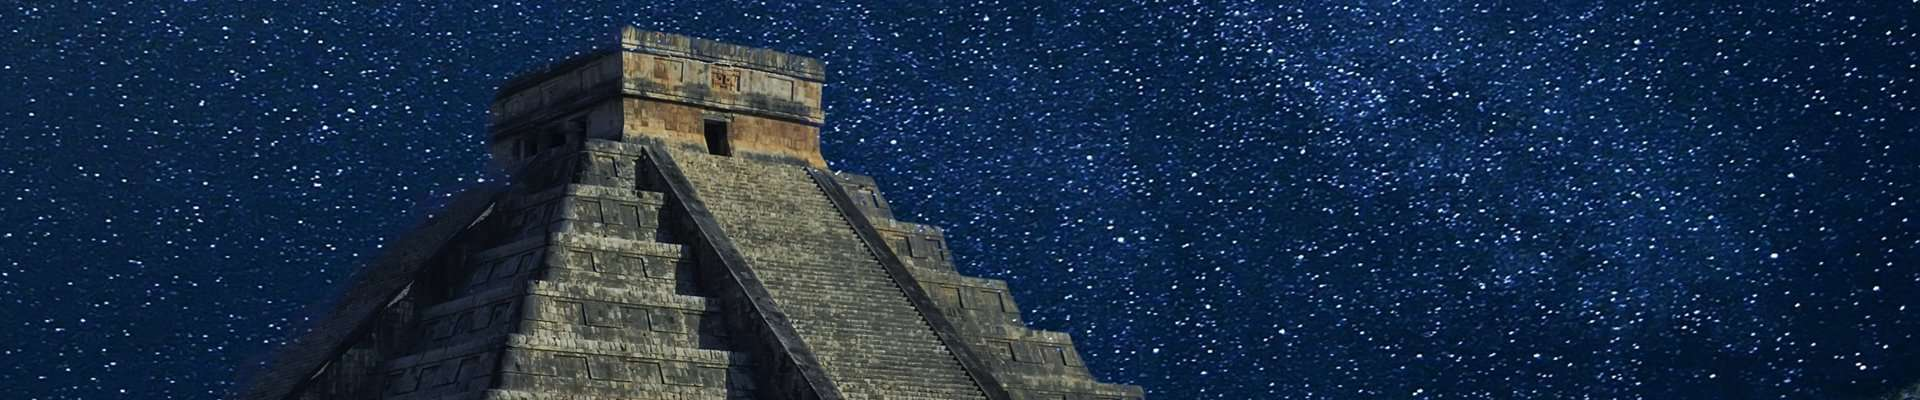 The top of Temple of Kukulcán at Chichen Itza against a stary sky.